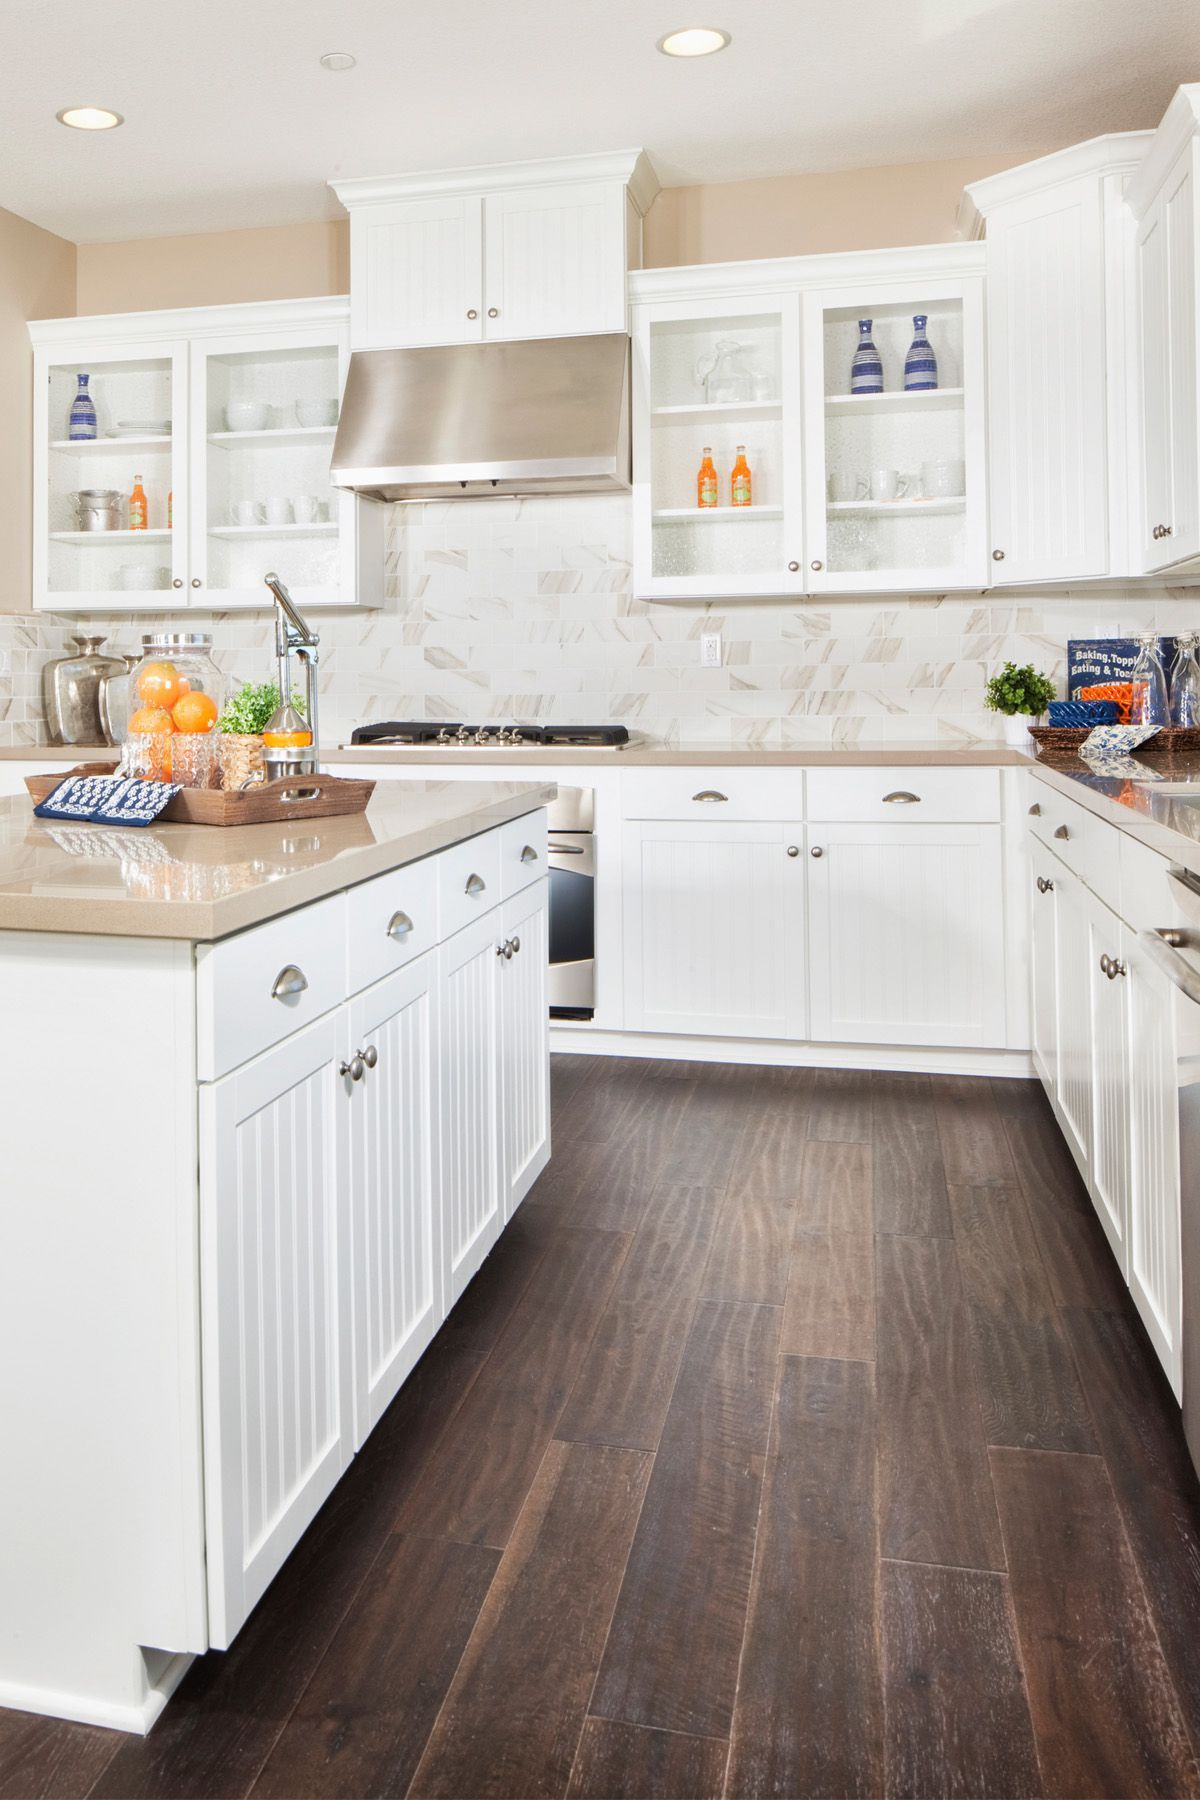 15 Kitchen Trends Designers Never Want To See Again Kitchen Design Small Kitchen Remodel Plans Modern Kitchen Wallpaper